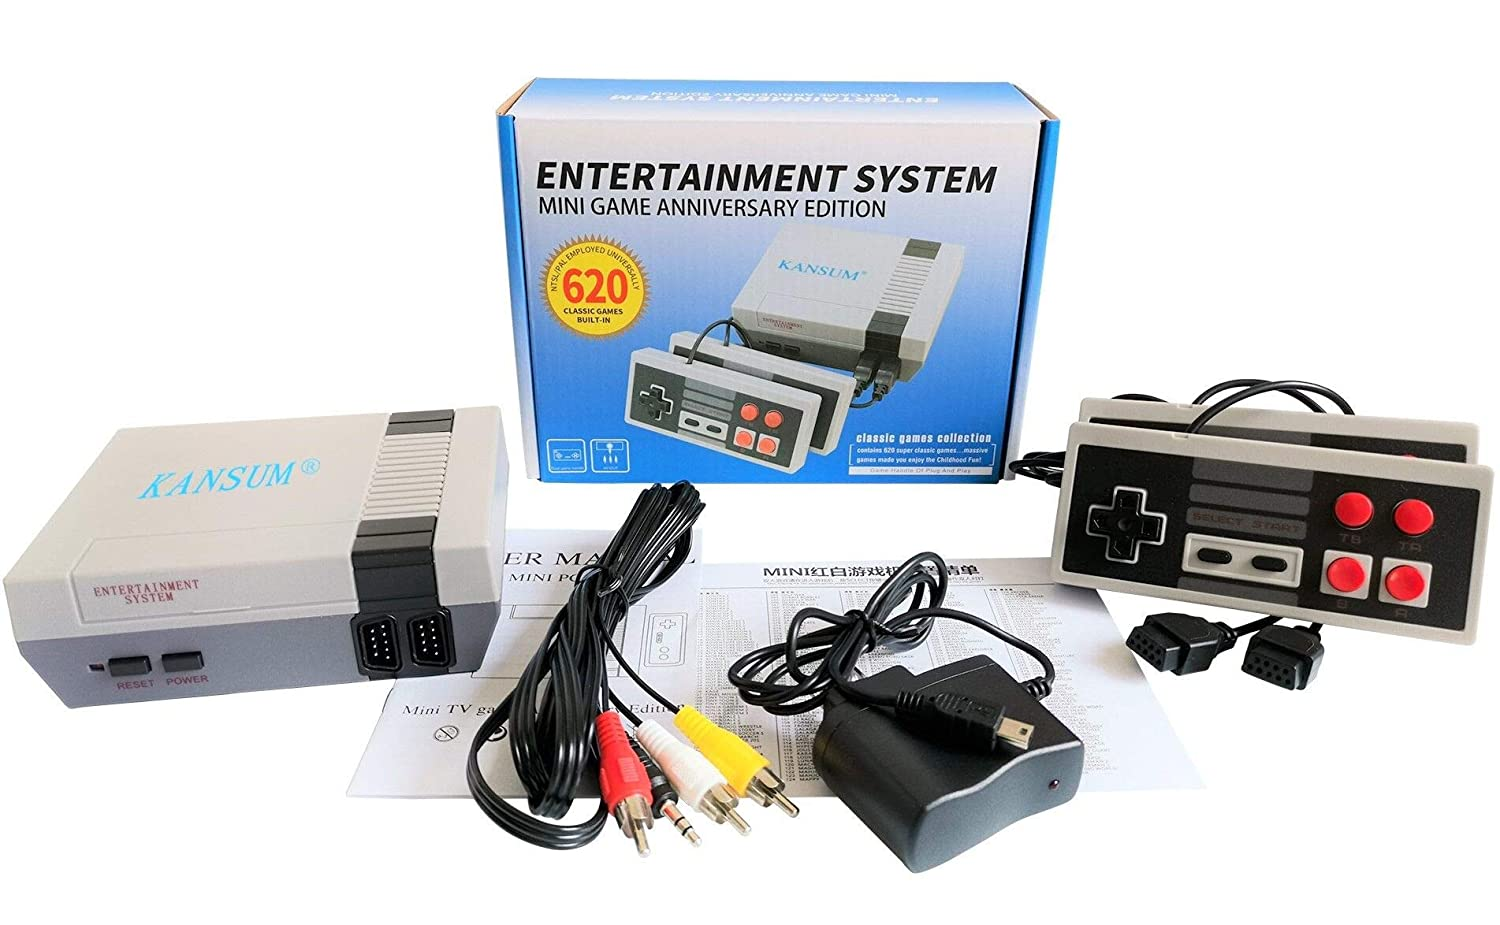 Mini Classic Game Consoles Mini Retro Game Consoles Built-in 620 Games Video Games Handheld Game Player (AV Out Cable 8-Bit) Bring You Happy Childhood Memories: Video Games